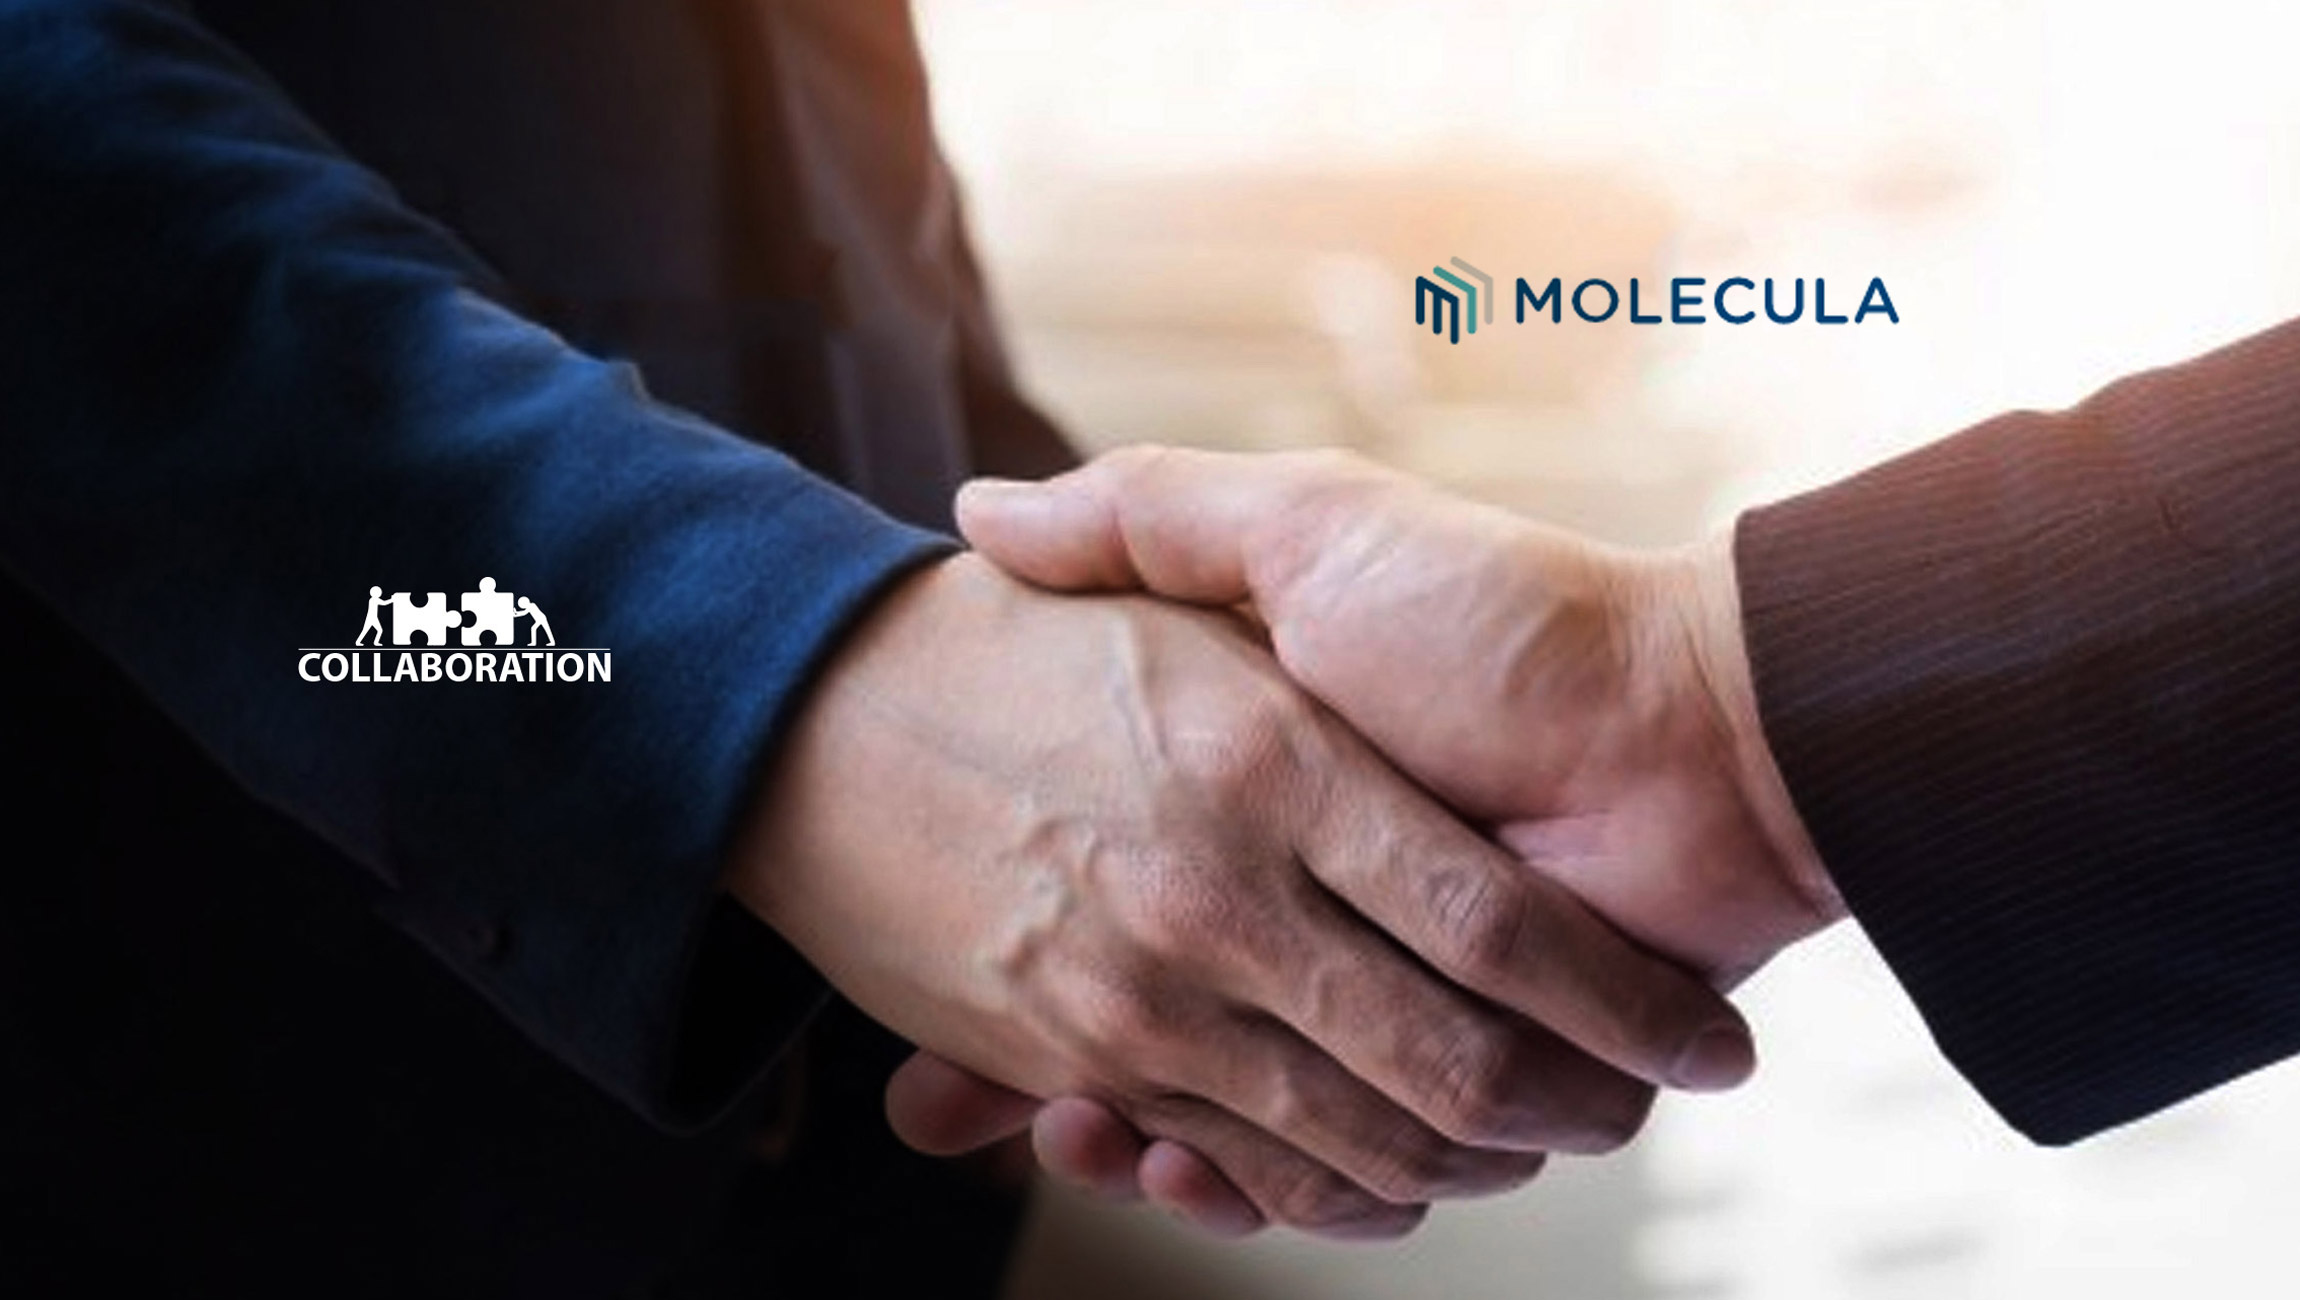 Aqfer and Molecula Partner to Offer New AdTech Solution